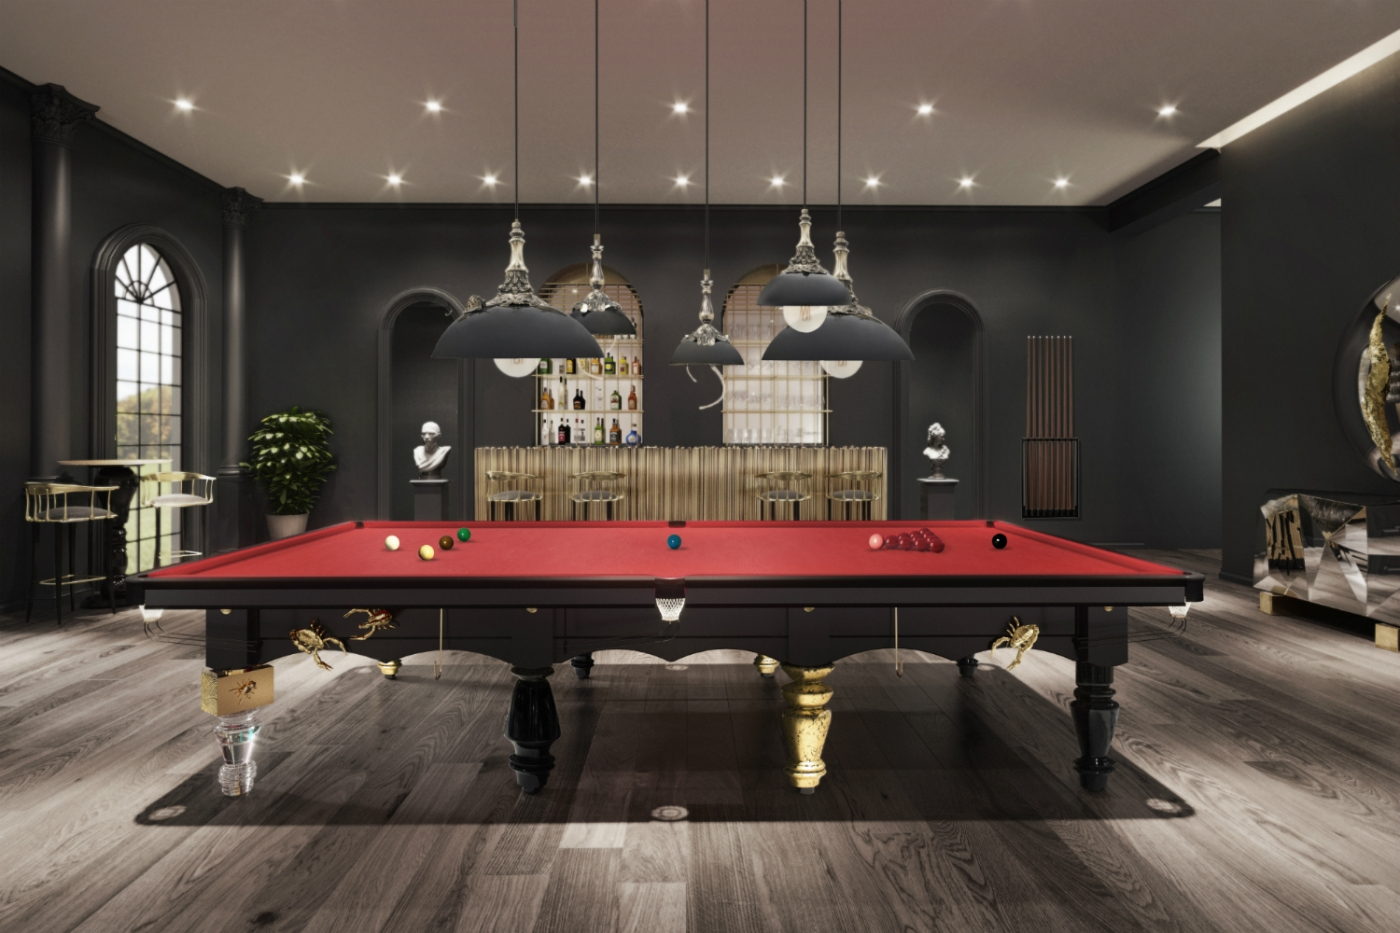 snooker table The Metamorphosis Snooker Table – Furniture Invaded by Bugs feature 3 1400x933